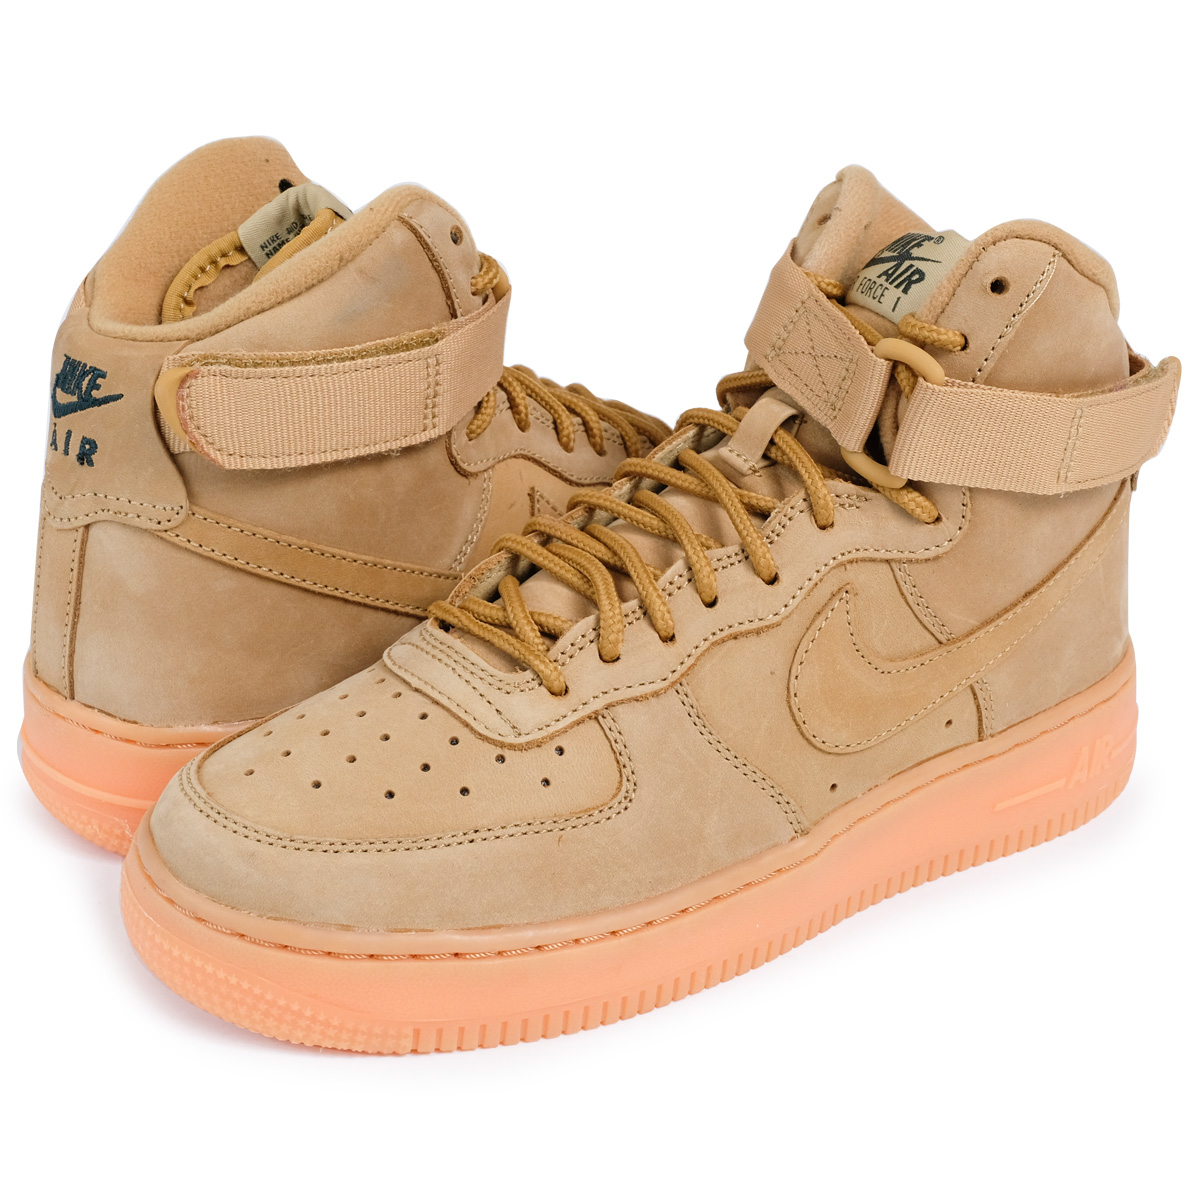 7e43e339840 Whats up Sports  NIKE AIR FORCE 1 HIGH WB GS Nike air force 1 lady s ...